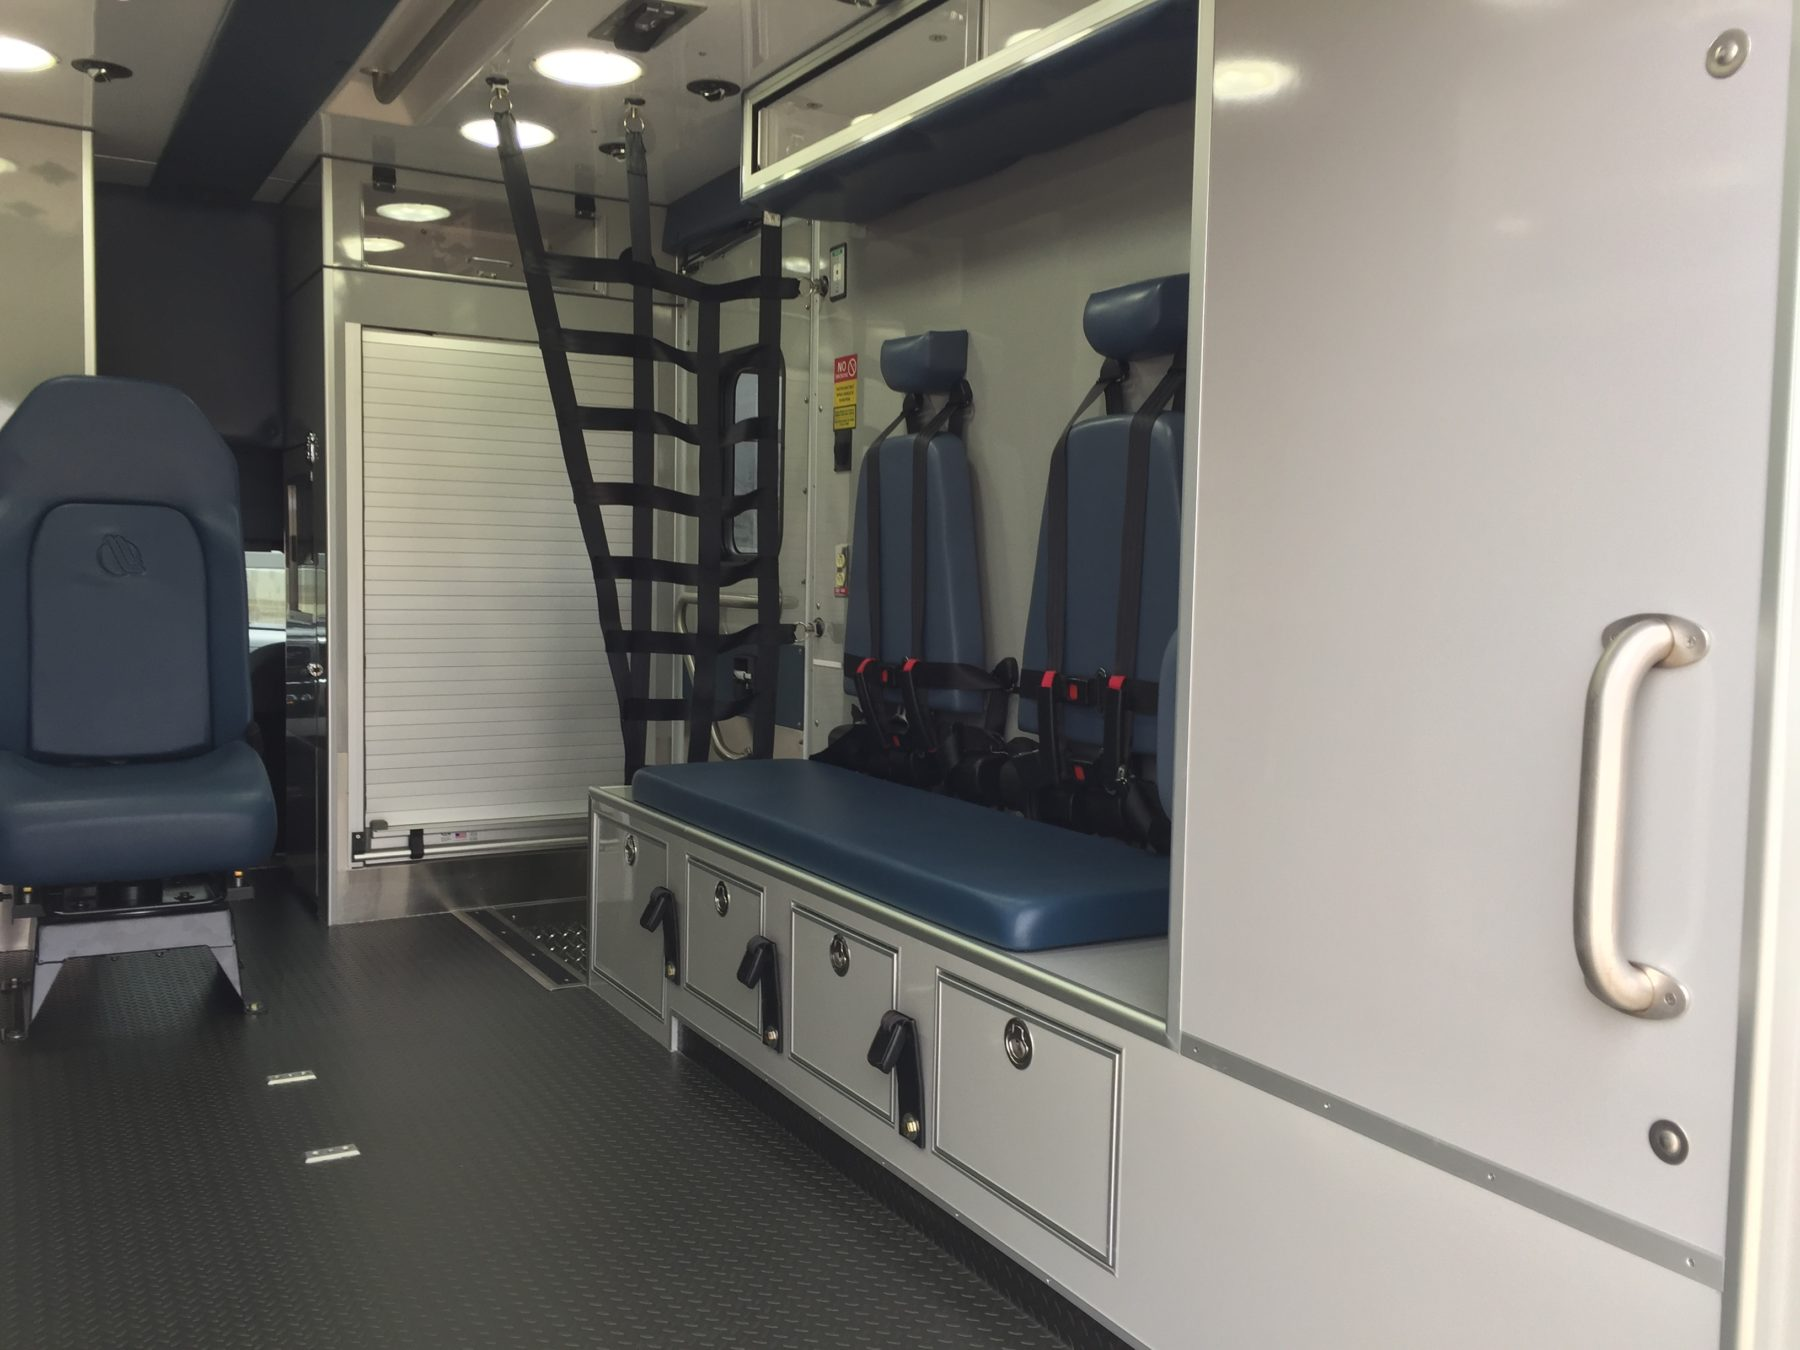 2018 Ram 4500 4x4 Heavy Duty Ambulance For Sale – Picture 13